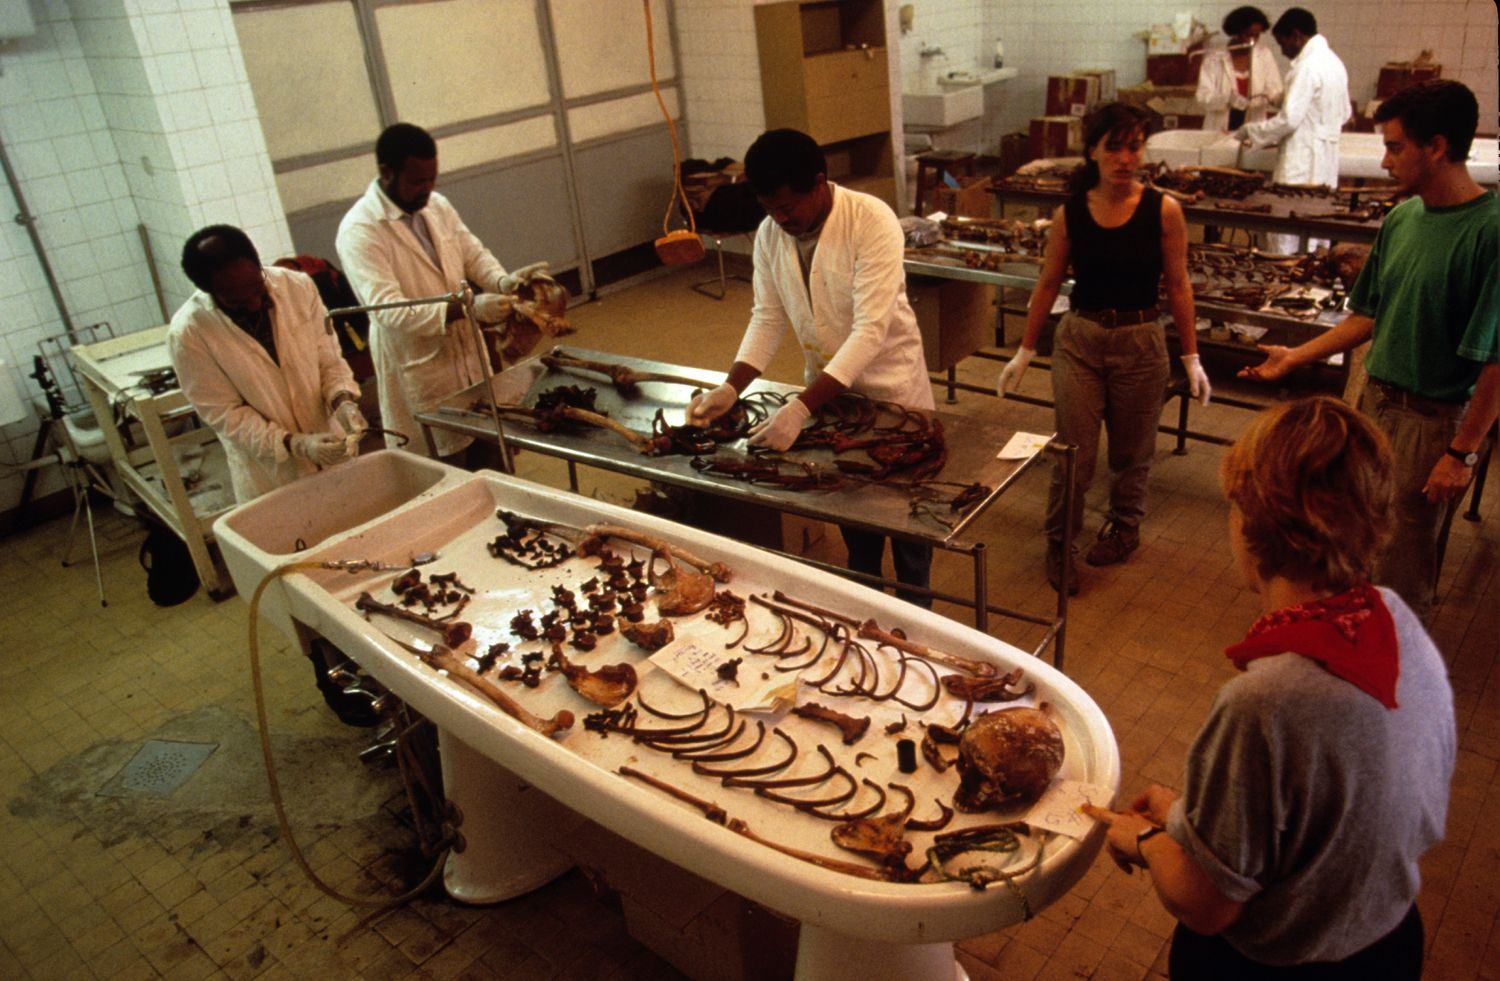 Forensic anthropology jobs needed another government